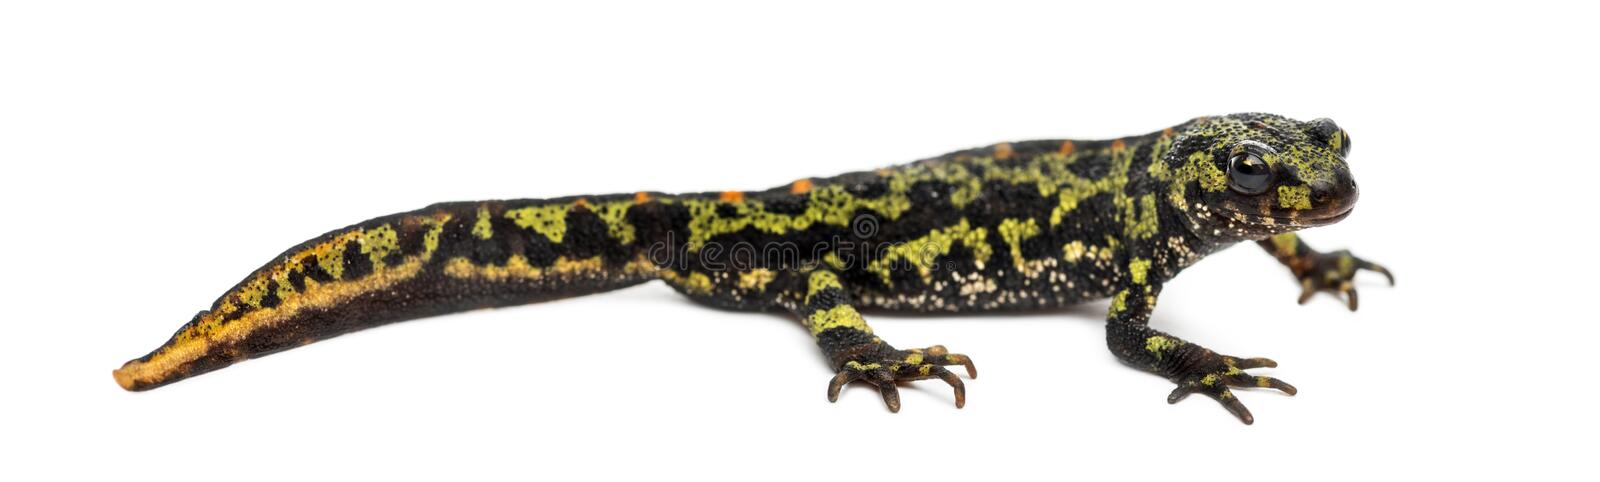 Side view of a Marbled newt, Triturus marmoratus royalty free stock image